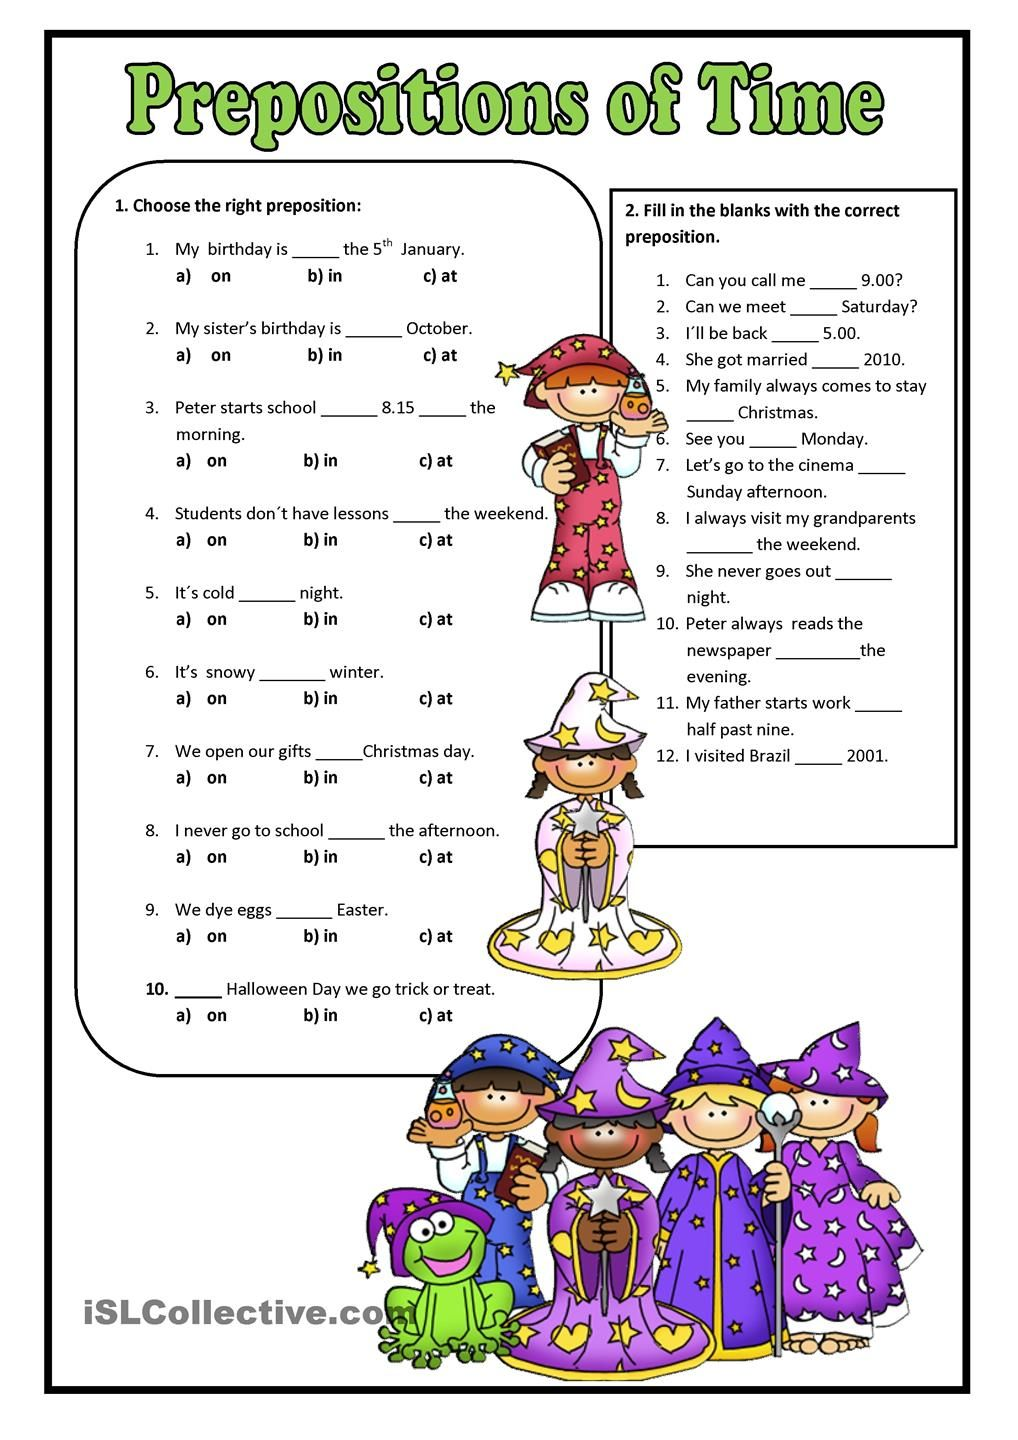 Prepositions Of Time With Images Prepositions English